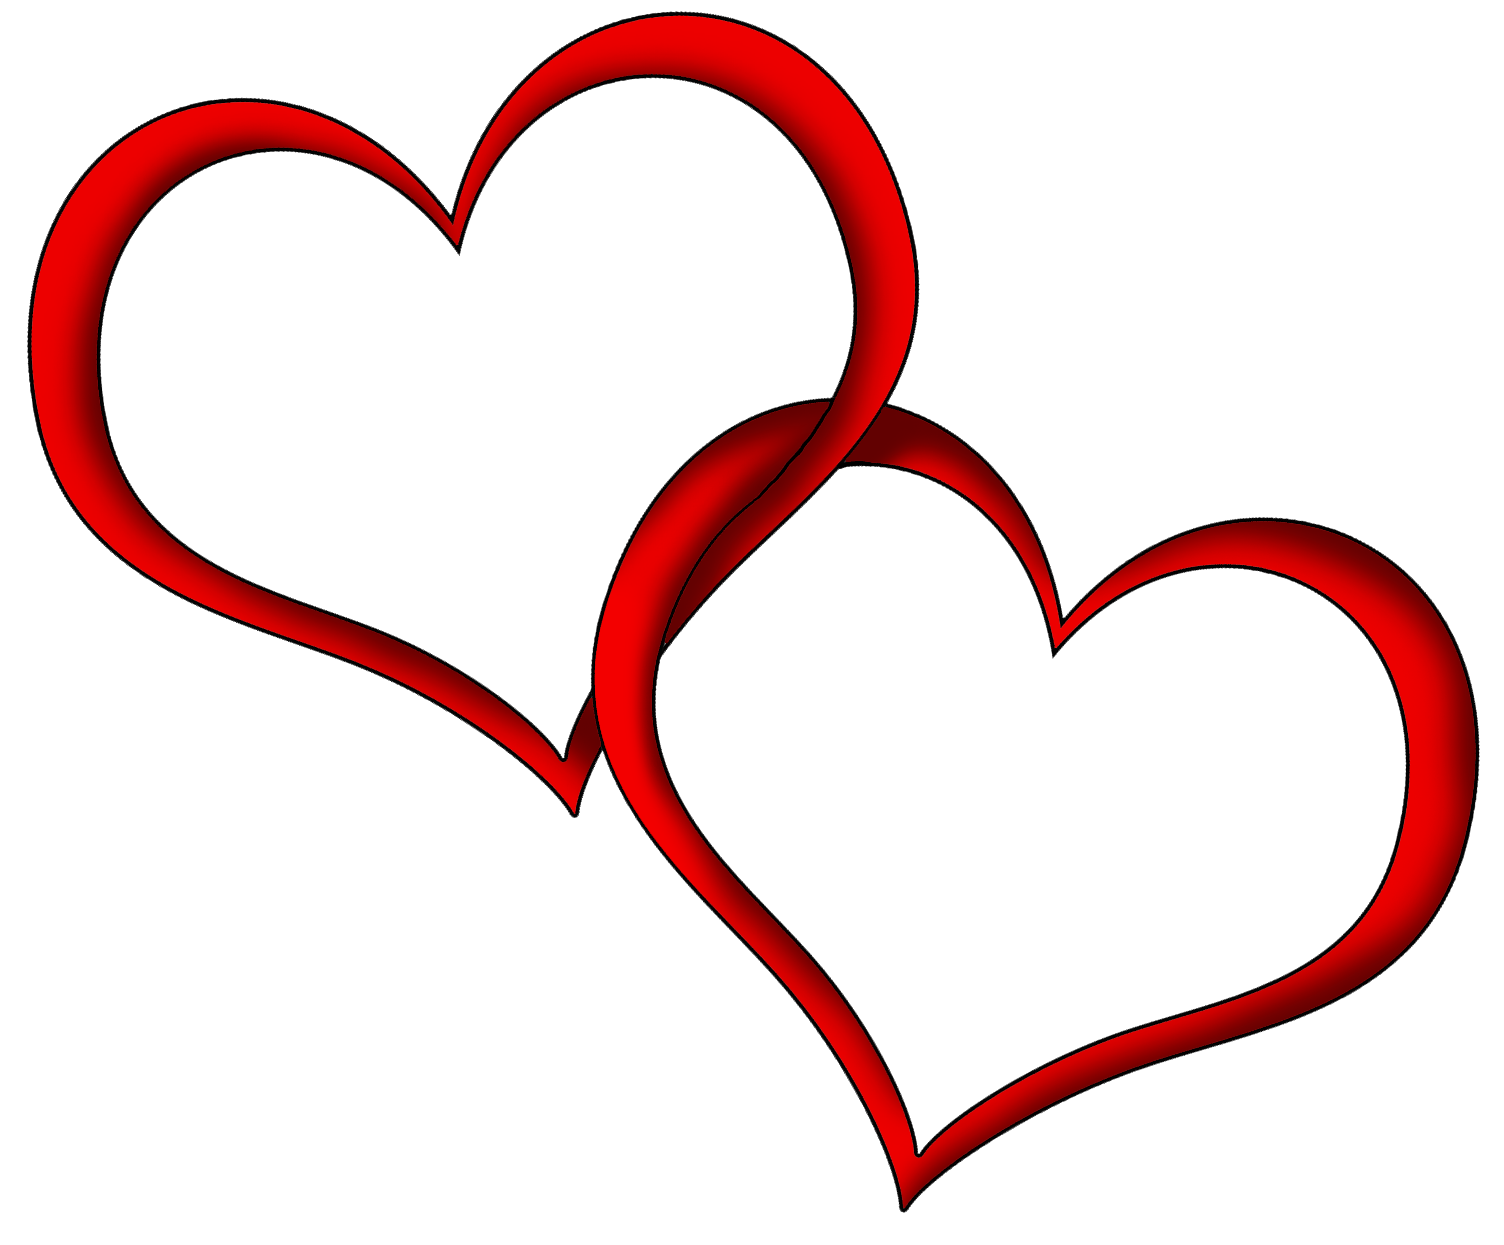 Valentine Heart clipart - Love Hearth HD PNG